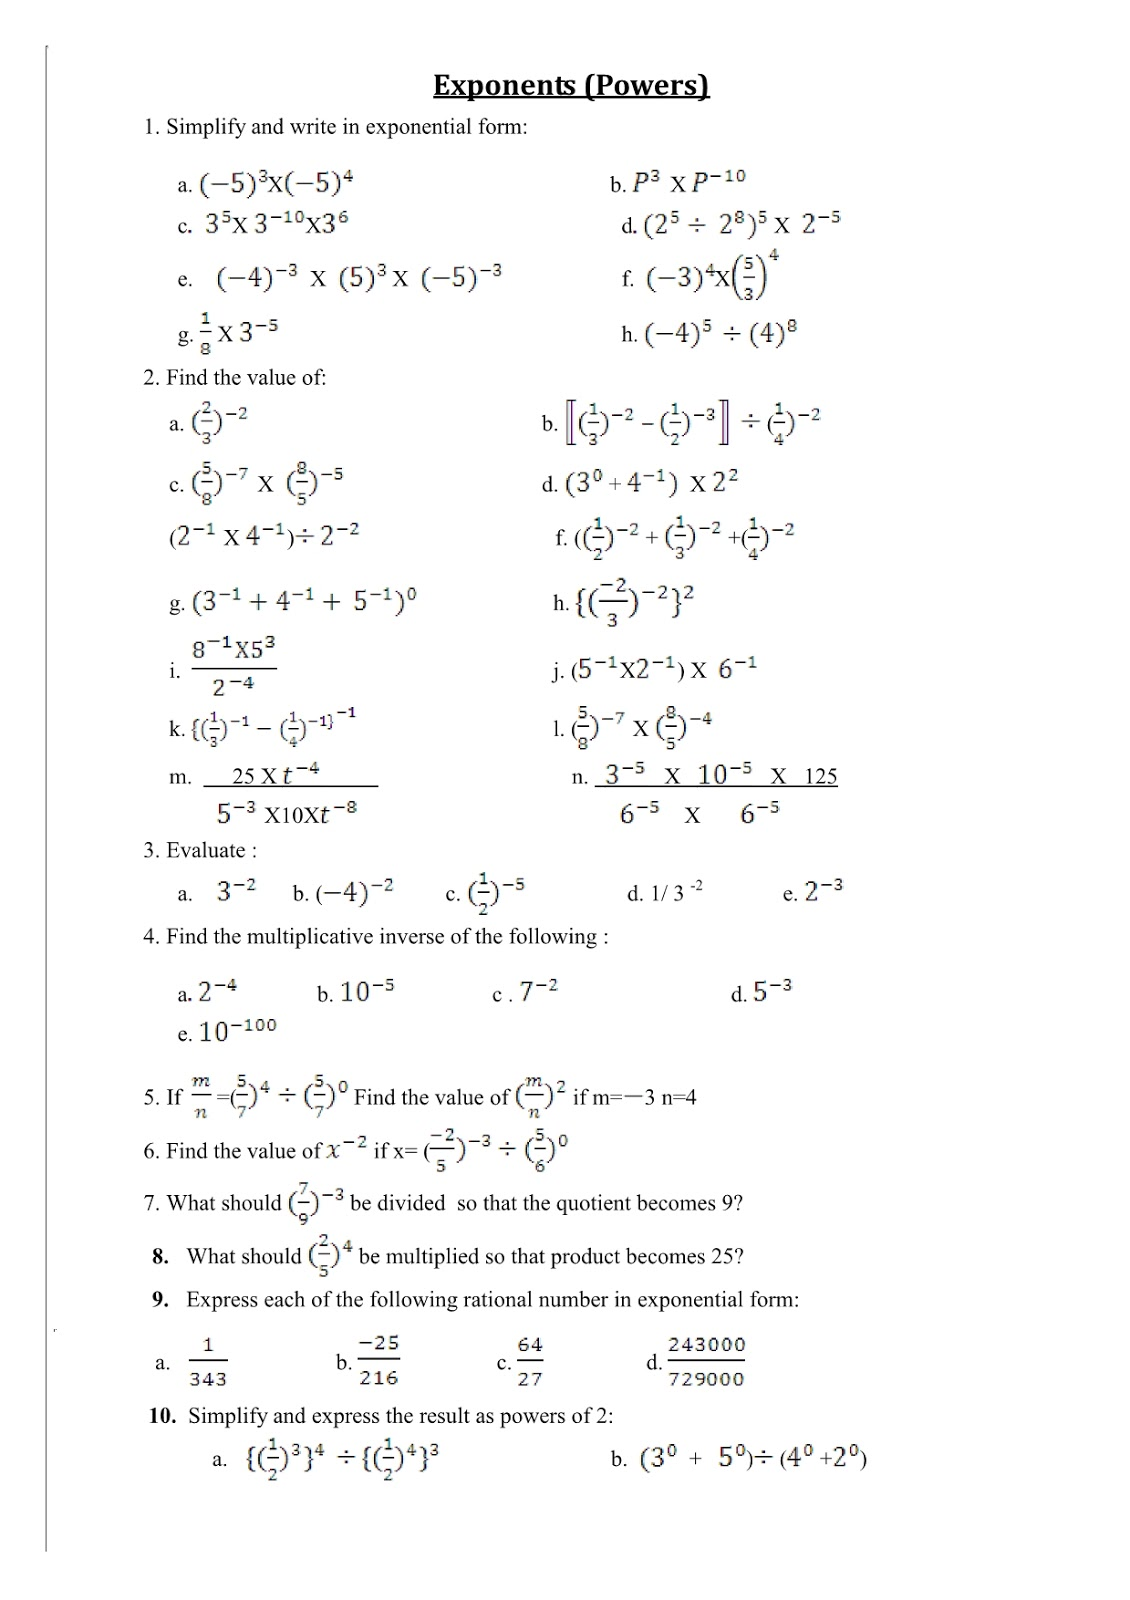 Grade 7 Math Worksheets and Problems: Exponents and Powers ...